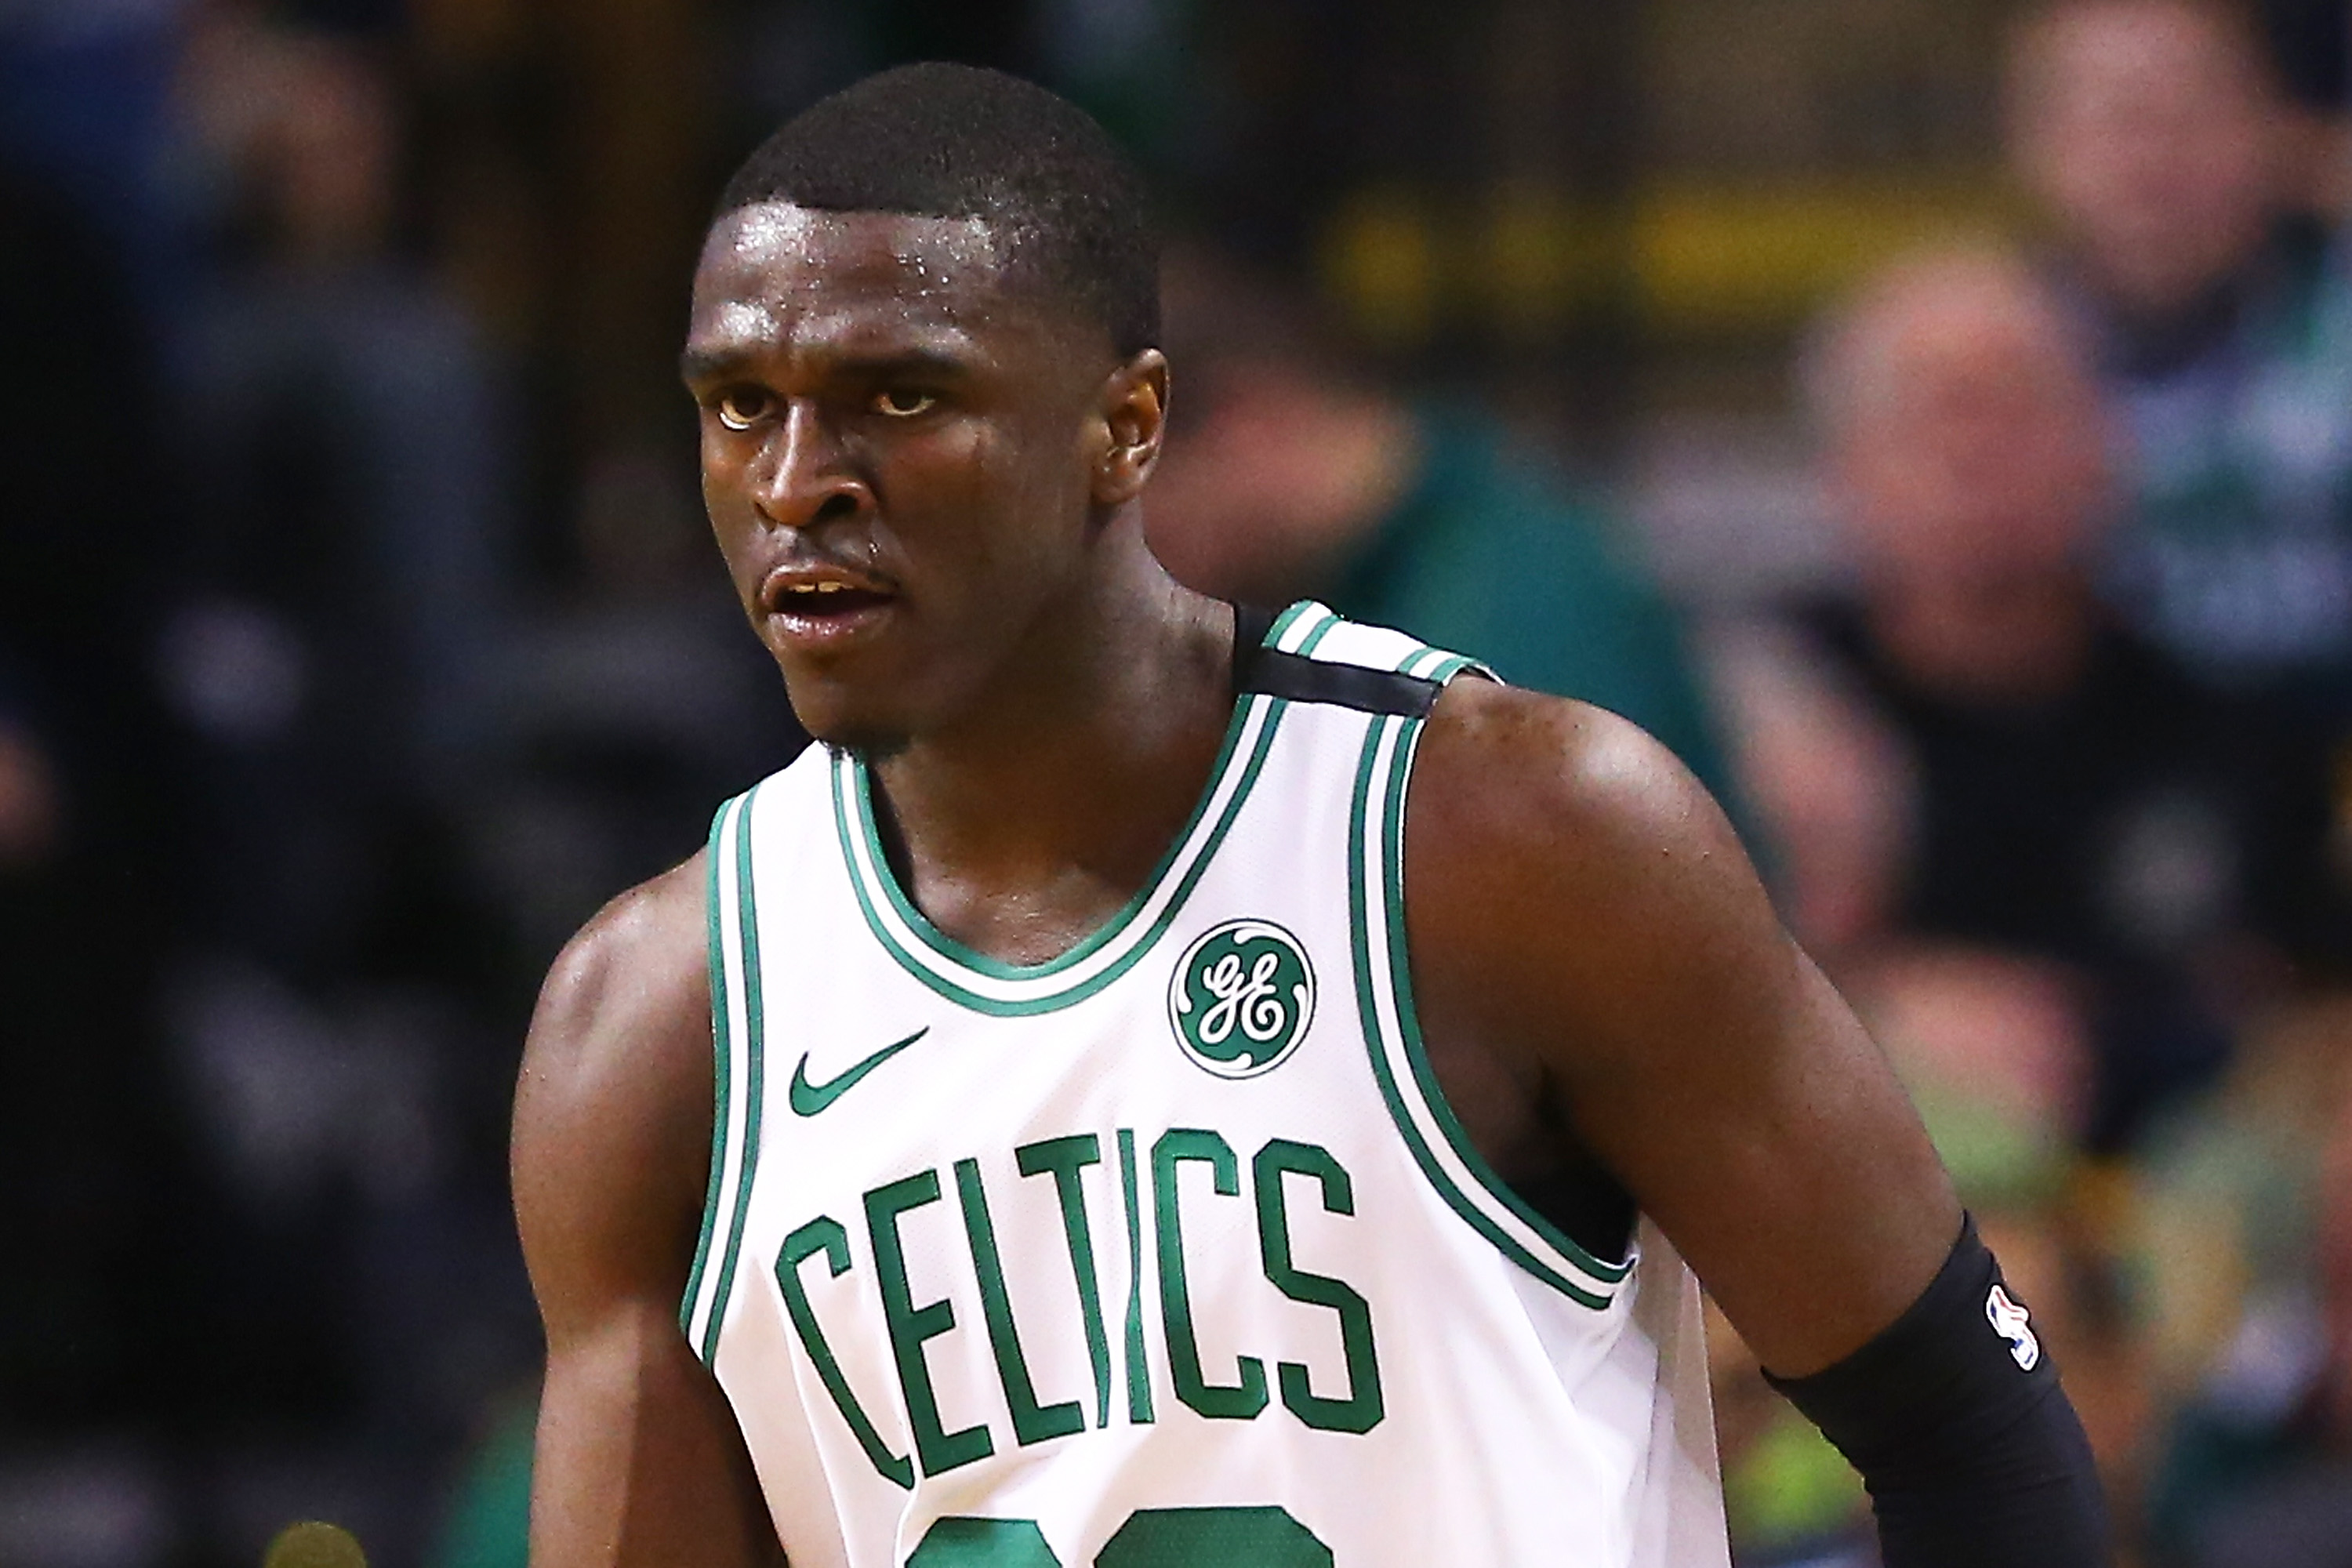 Jabari Bird looks on during a Celtics game